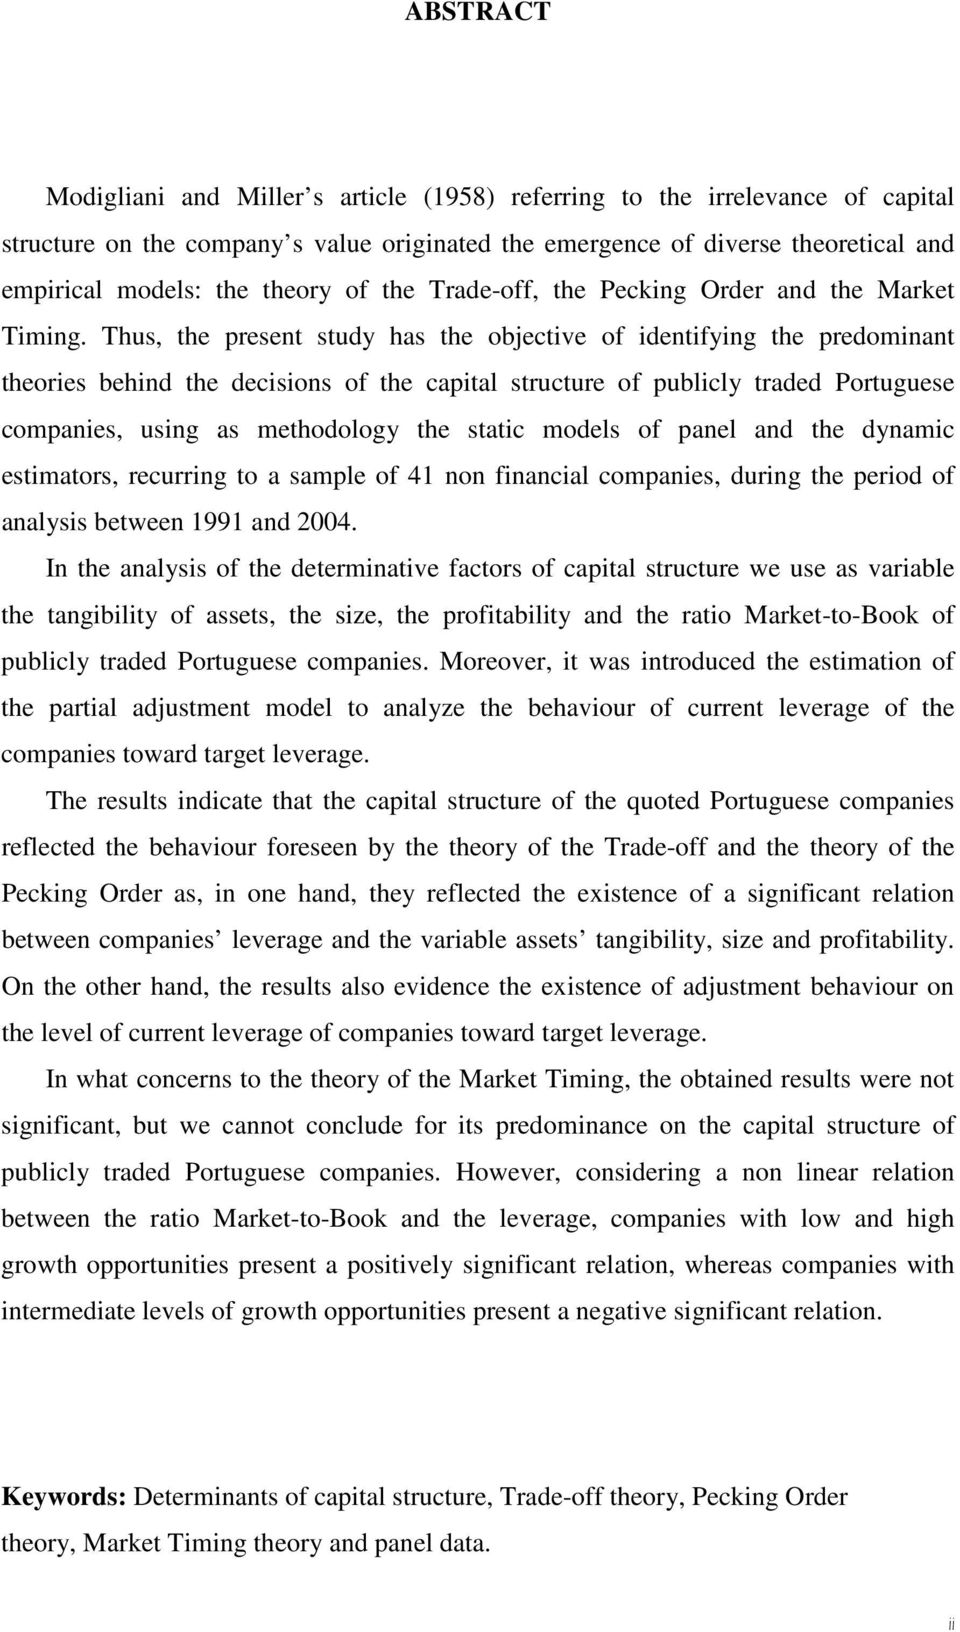 Thus, the present study has the objective of identifying the predominant theories behind the decisions of the capal structure of publicly traded Portuguese companies, using as methodology the static